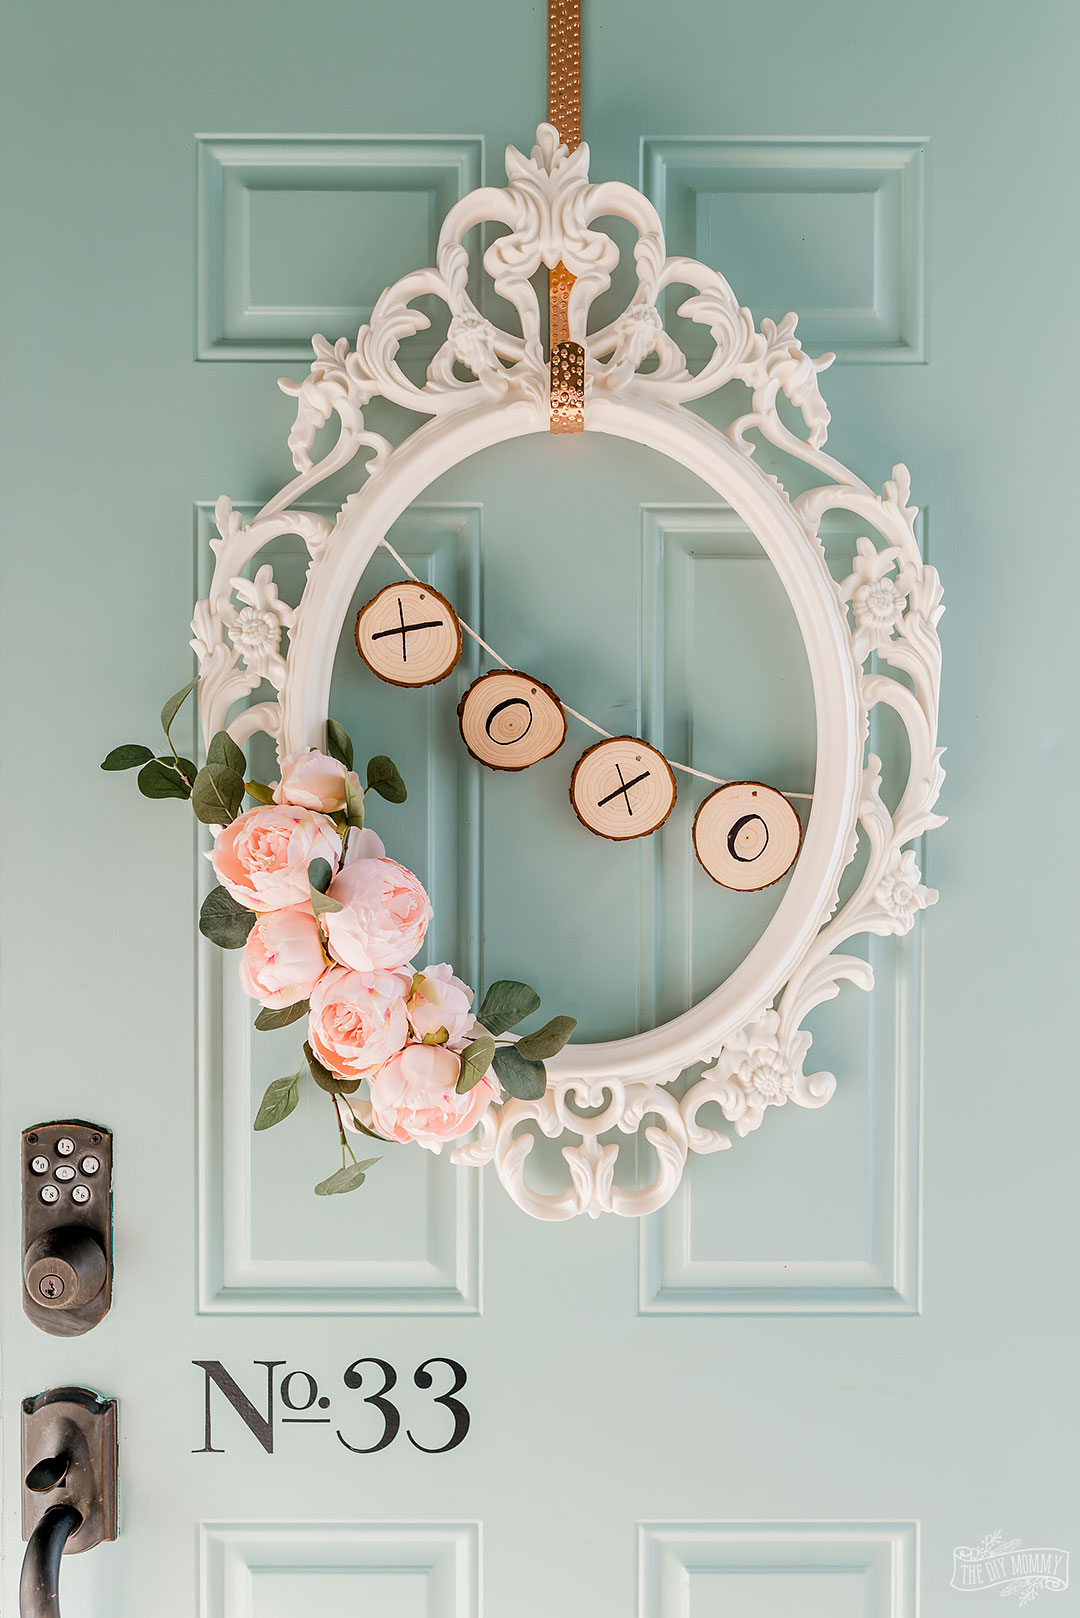 Let's make a romantic Valentine's Day wreath from an old IKEA picture frame! This DIY wreath is easy to make, and it has such a sweet vibe that's perfect for your Valentine decor.